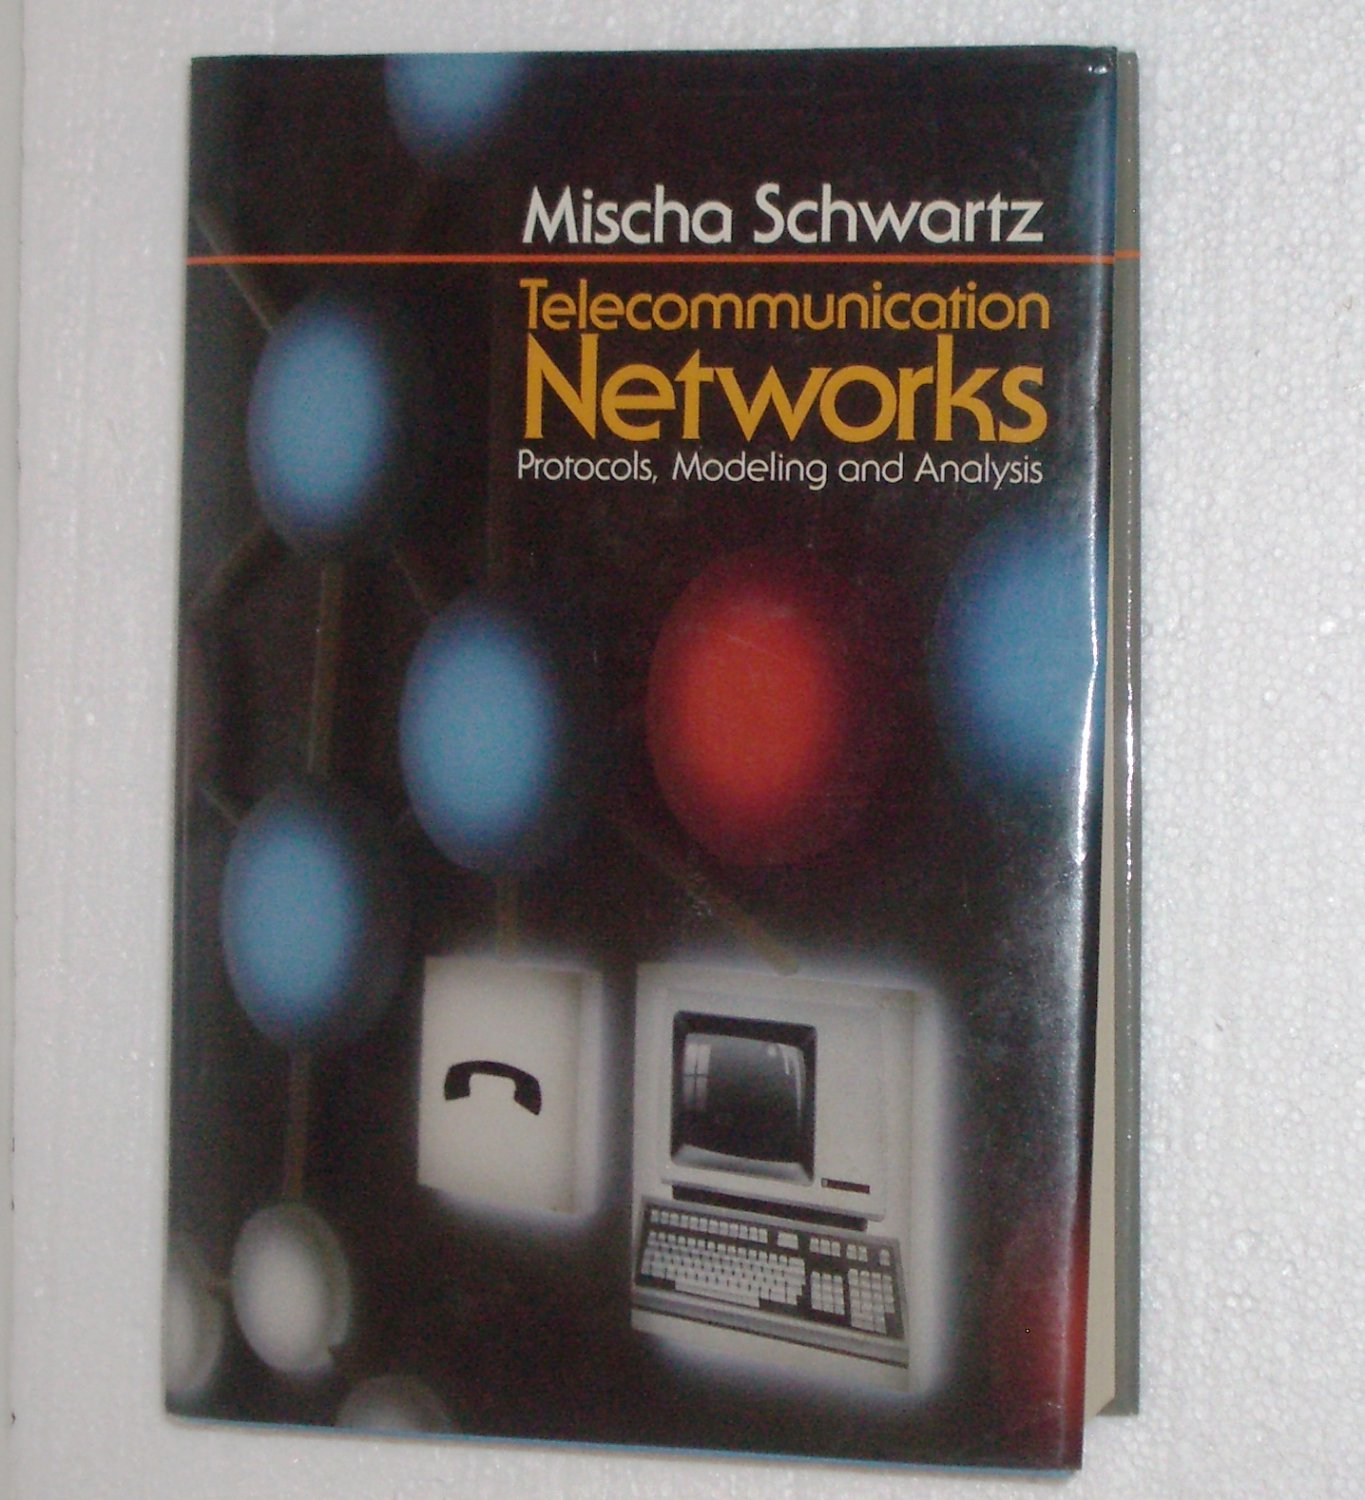 Telecommunication Networks: Protocols, Modeling and Analysis by Mischa Schwartz 2007 Hardcover